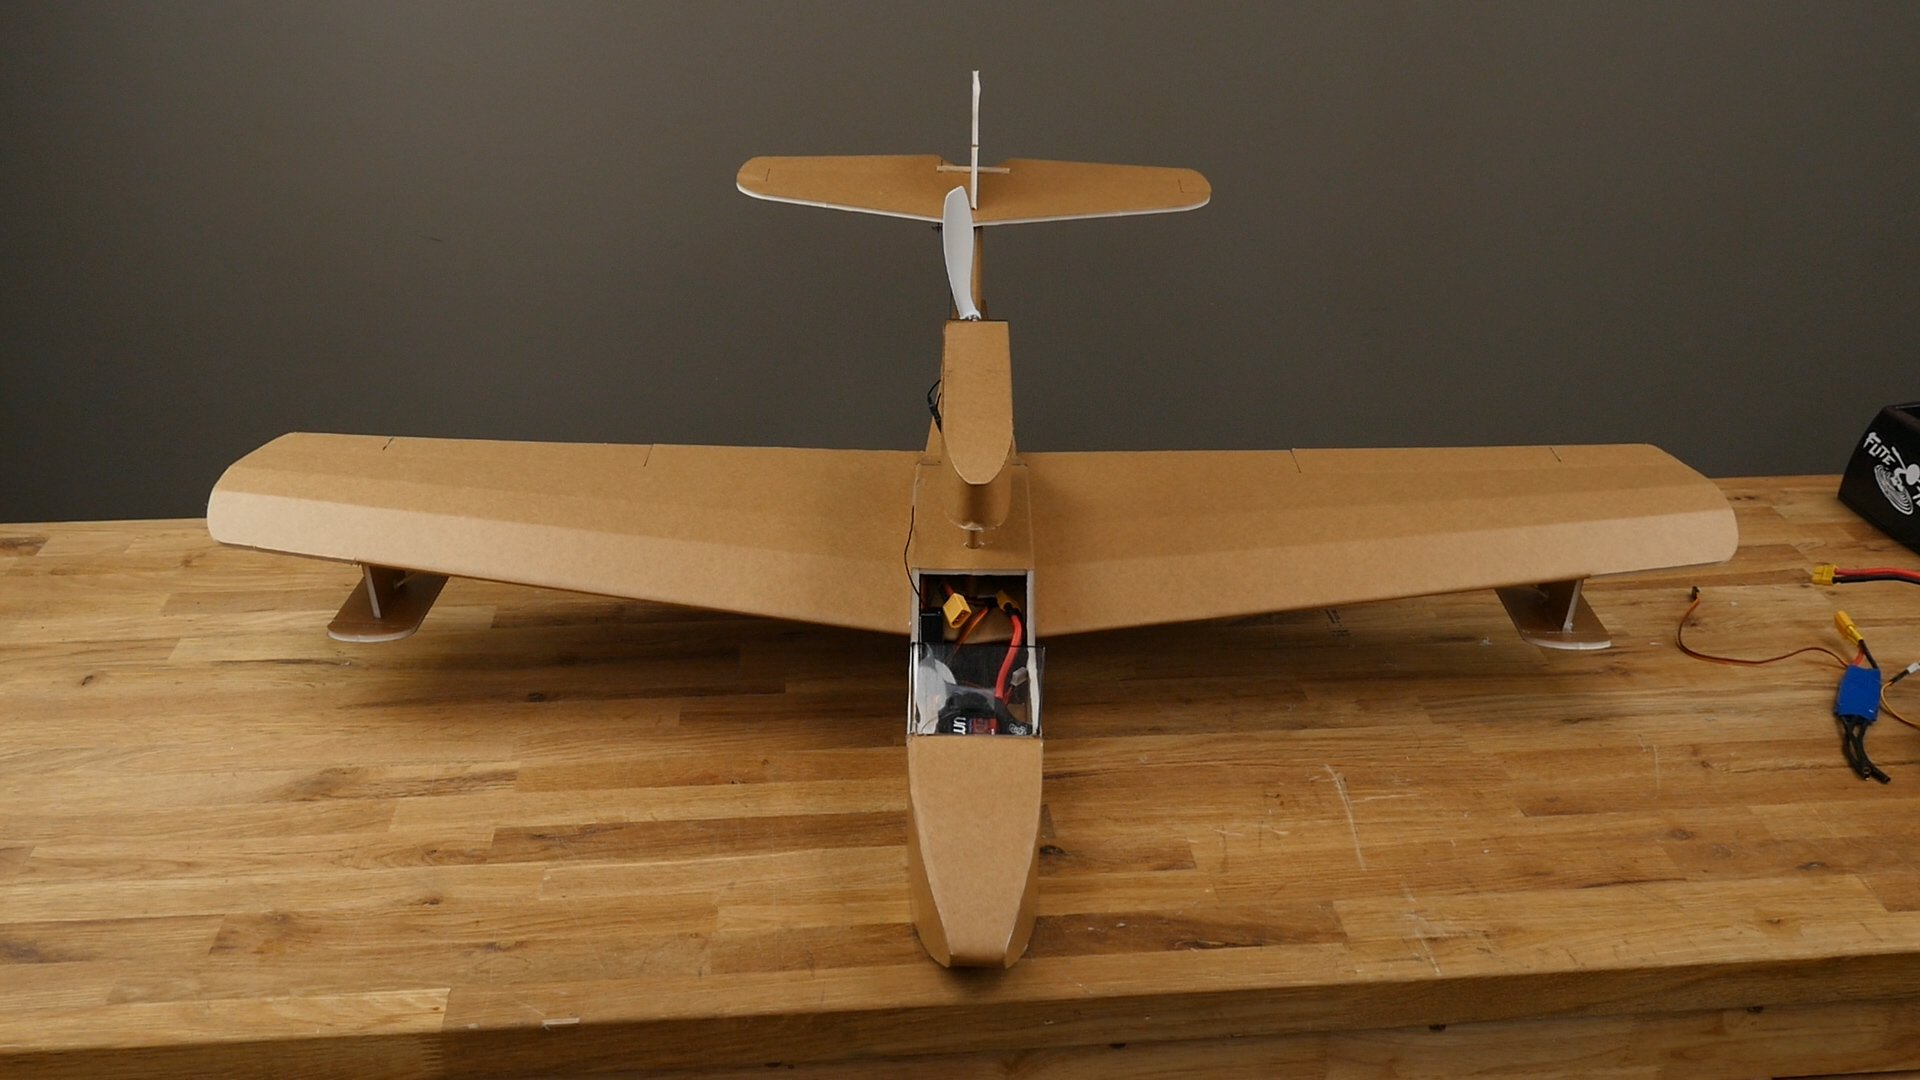 How to make rc plane out of cardboard